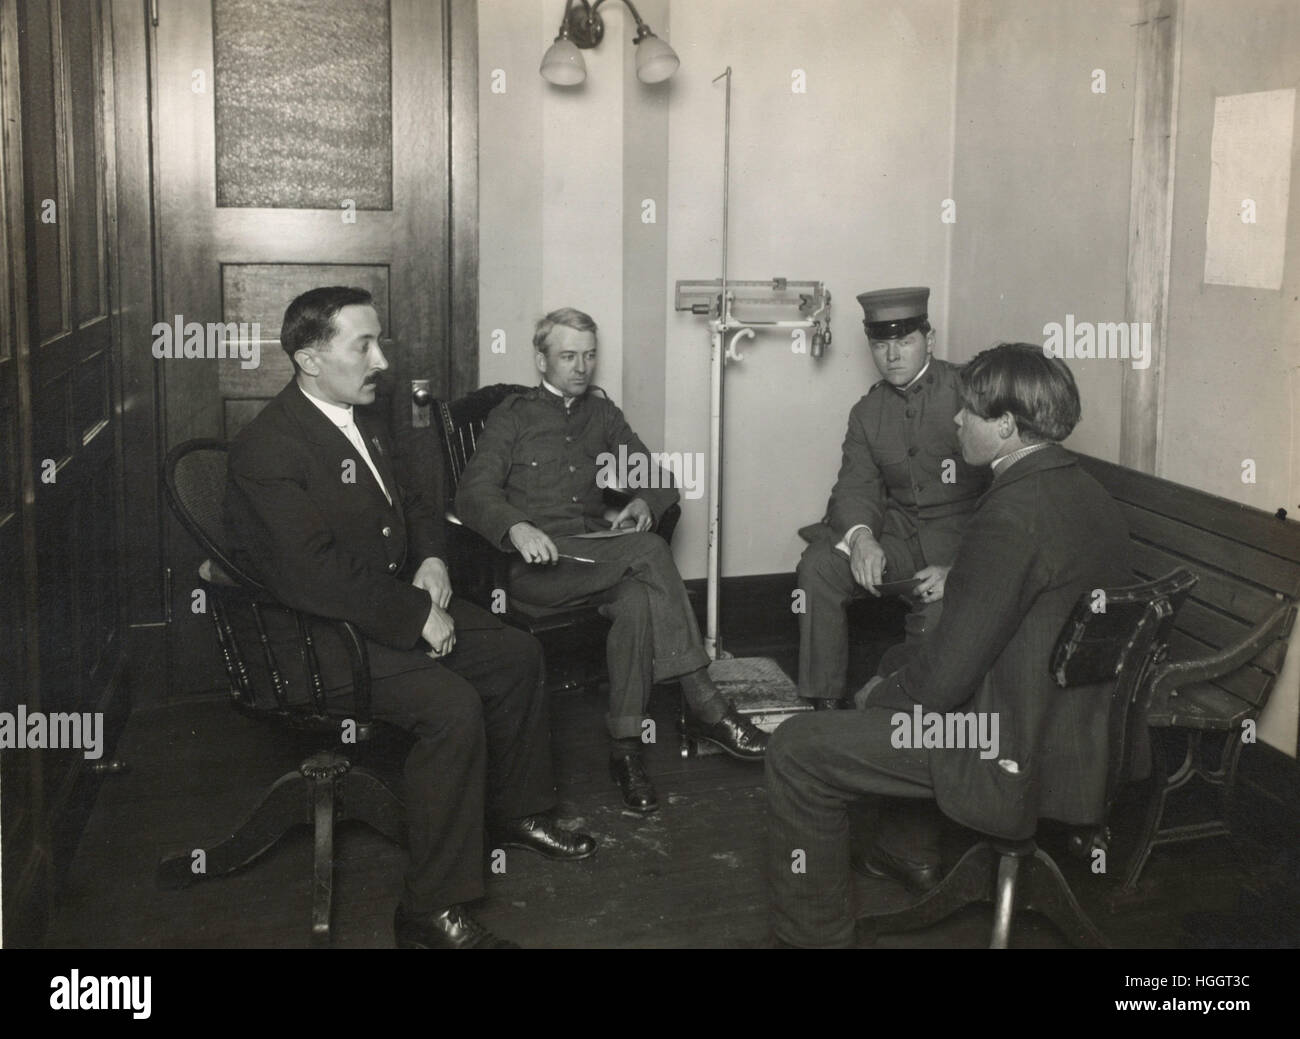 A private interview between a young immigrant and an Ellis Island official  - Ellis Island Immigration Station 1902 - Stock Image